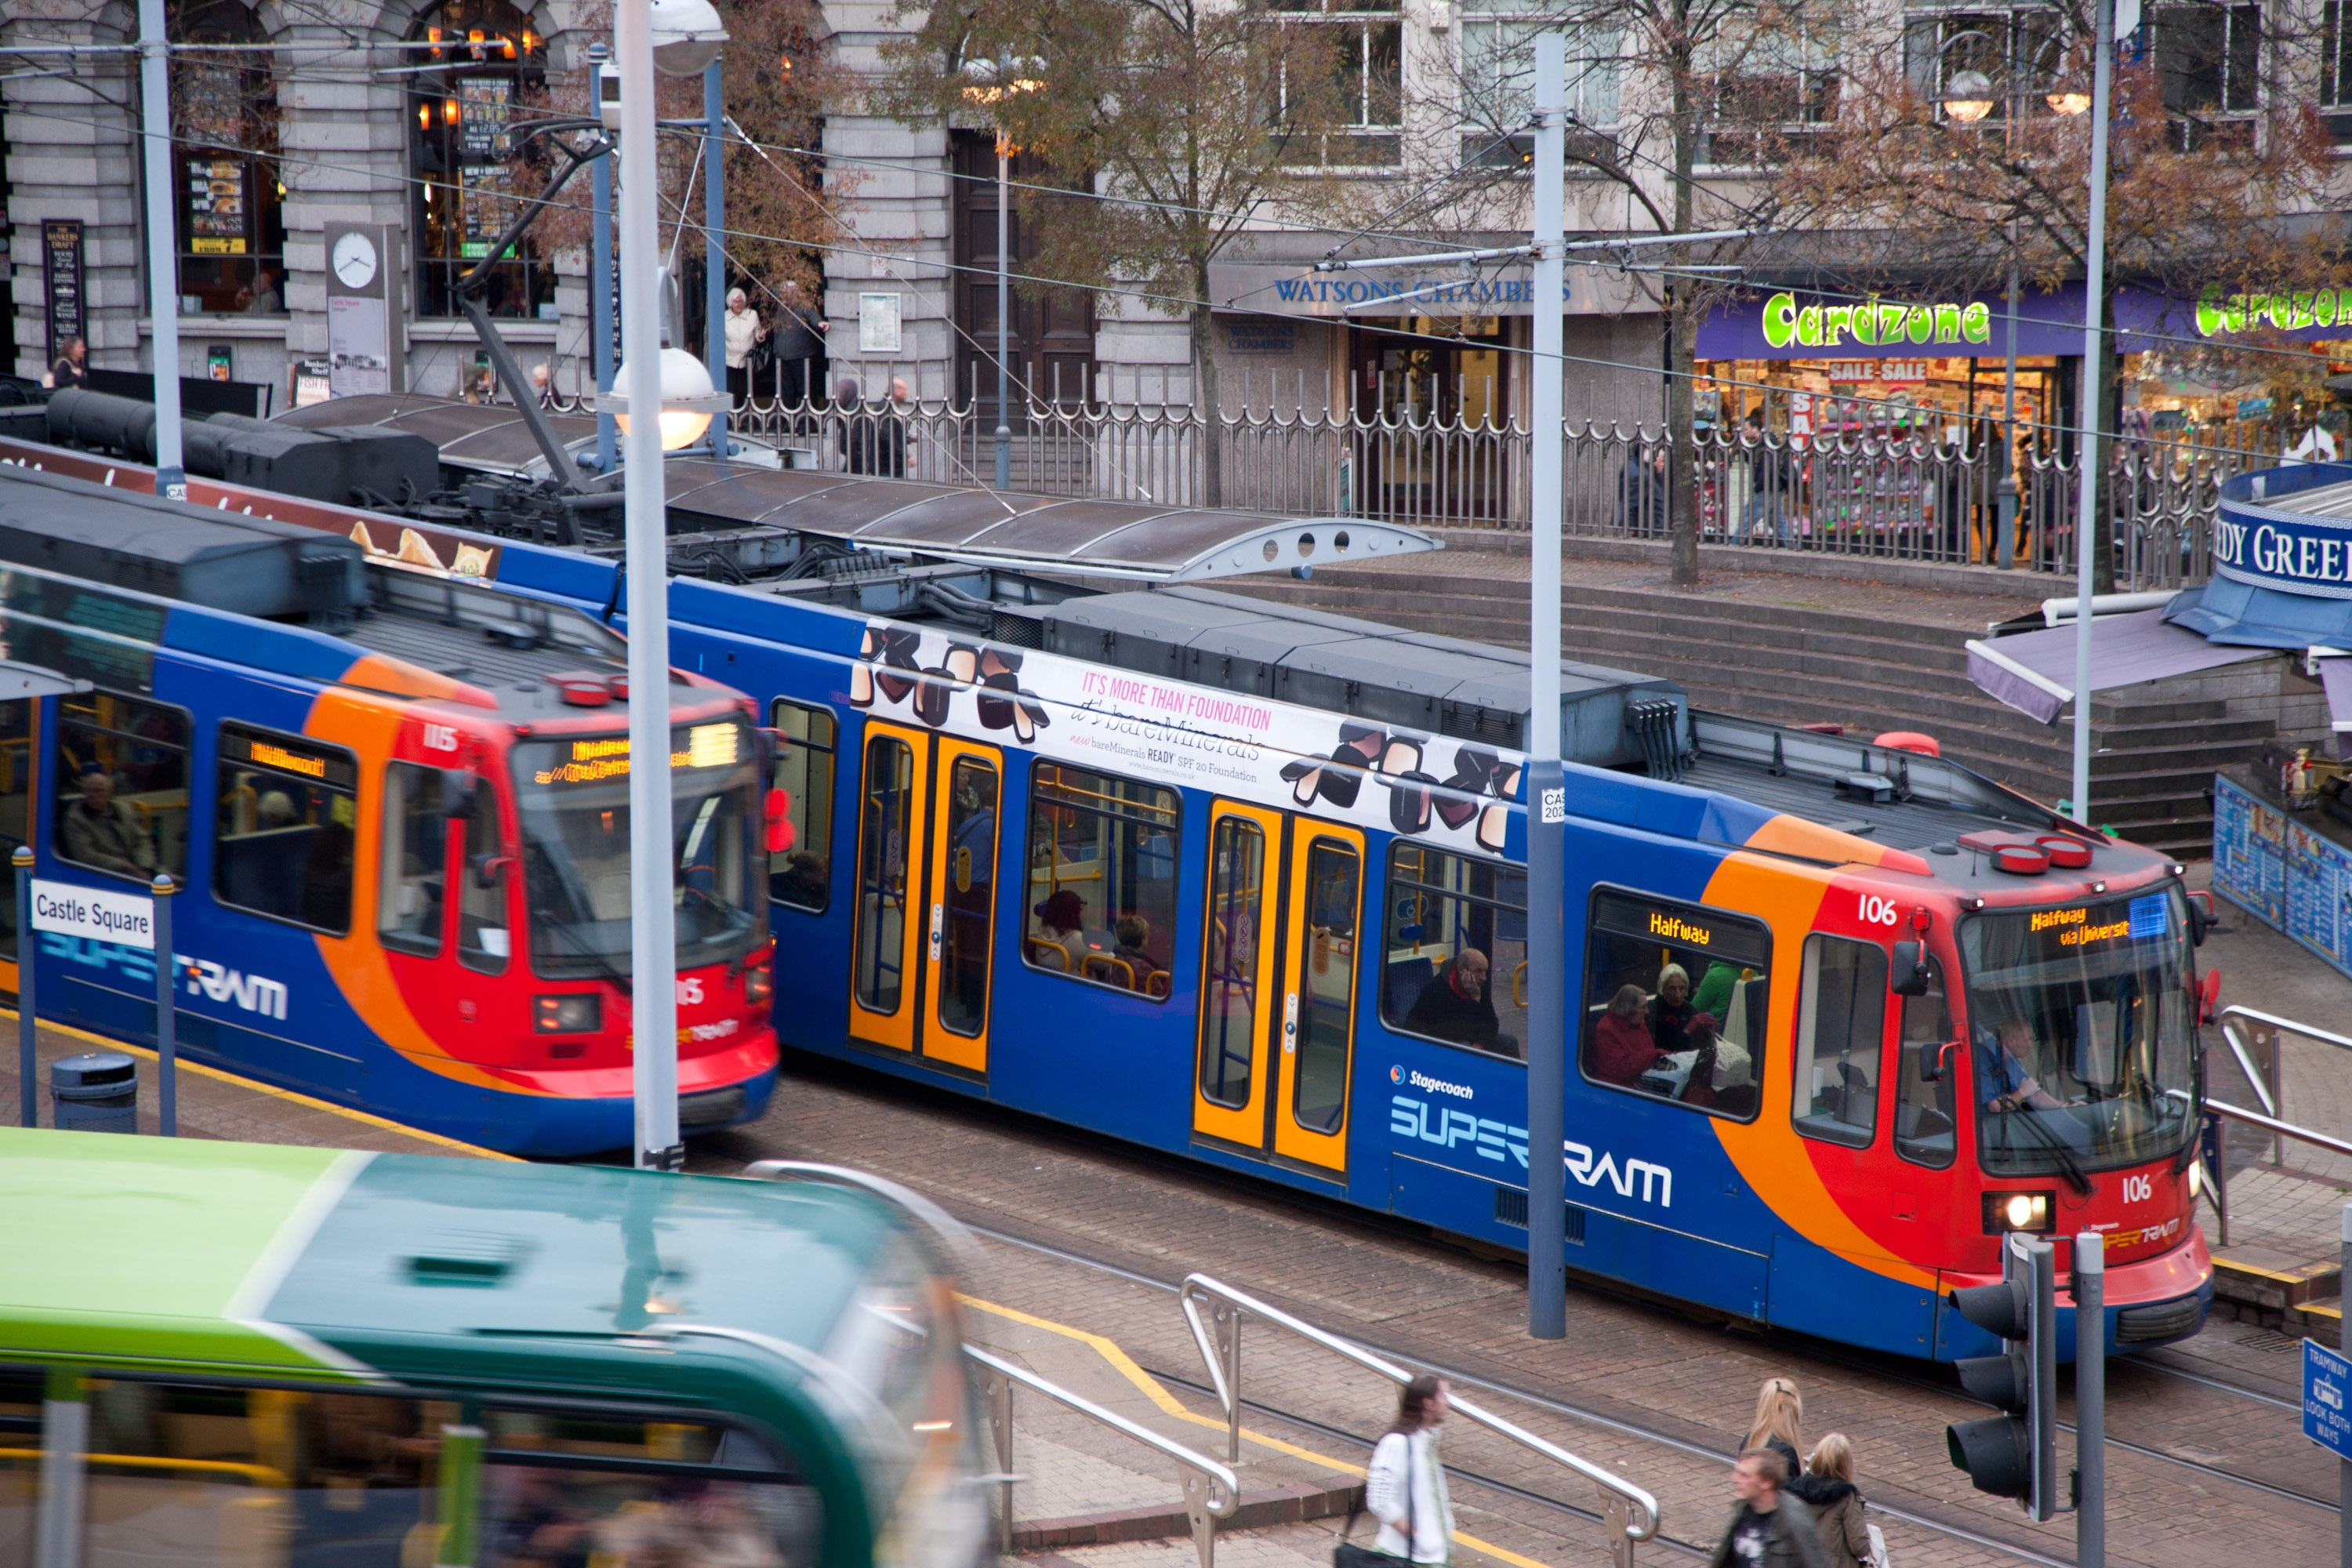 Supertram is back for Tramlines festival